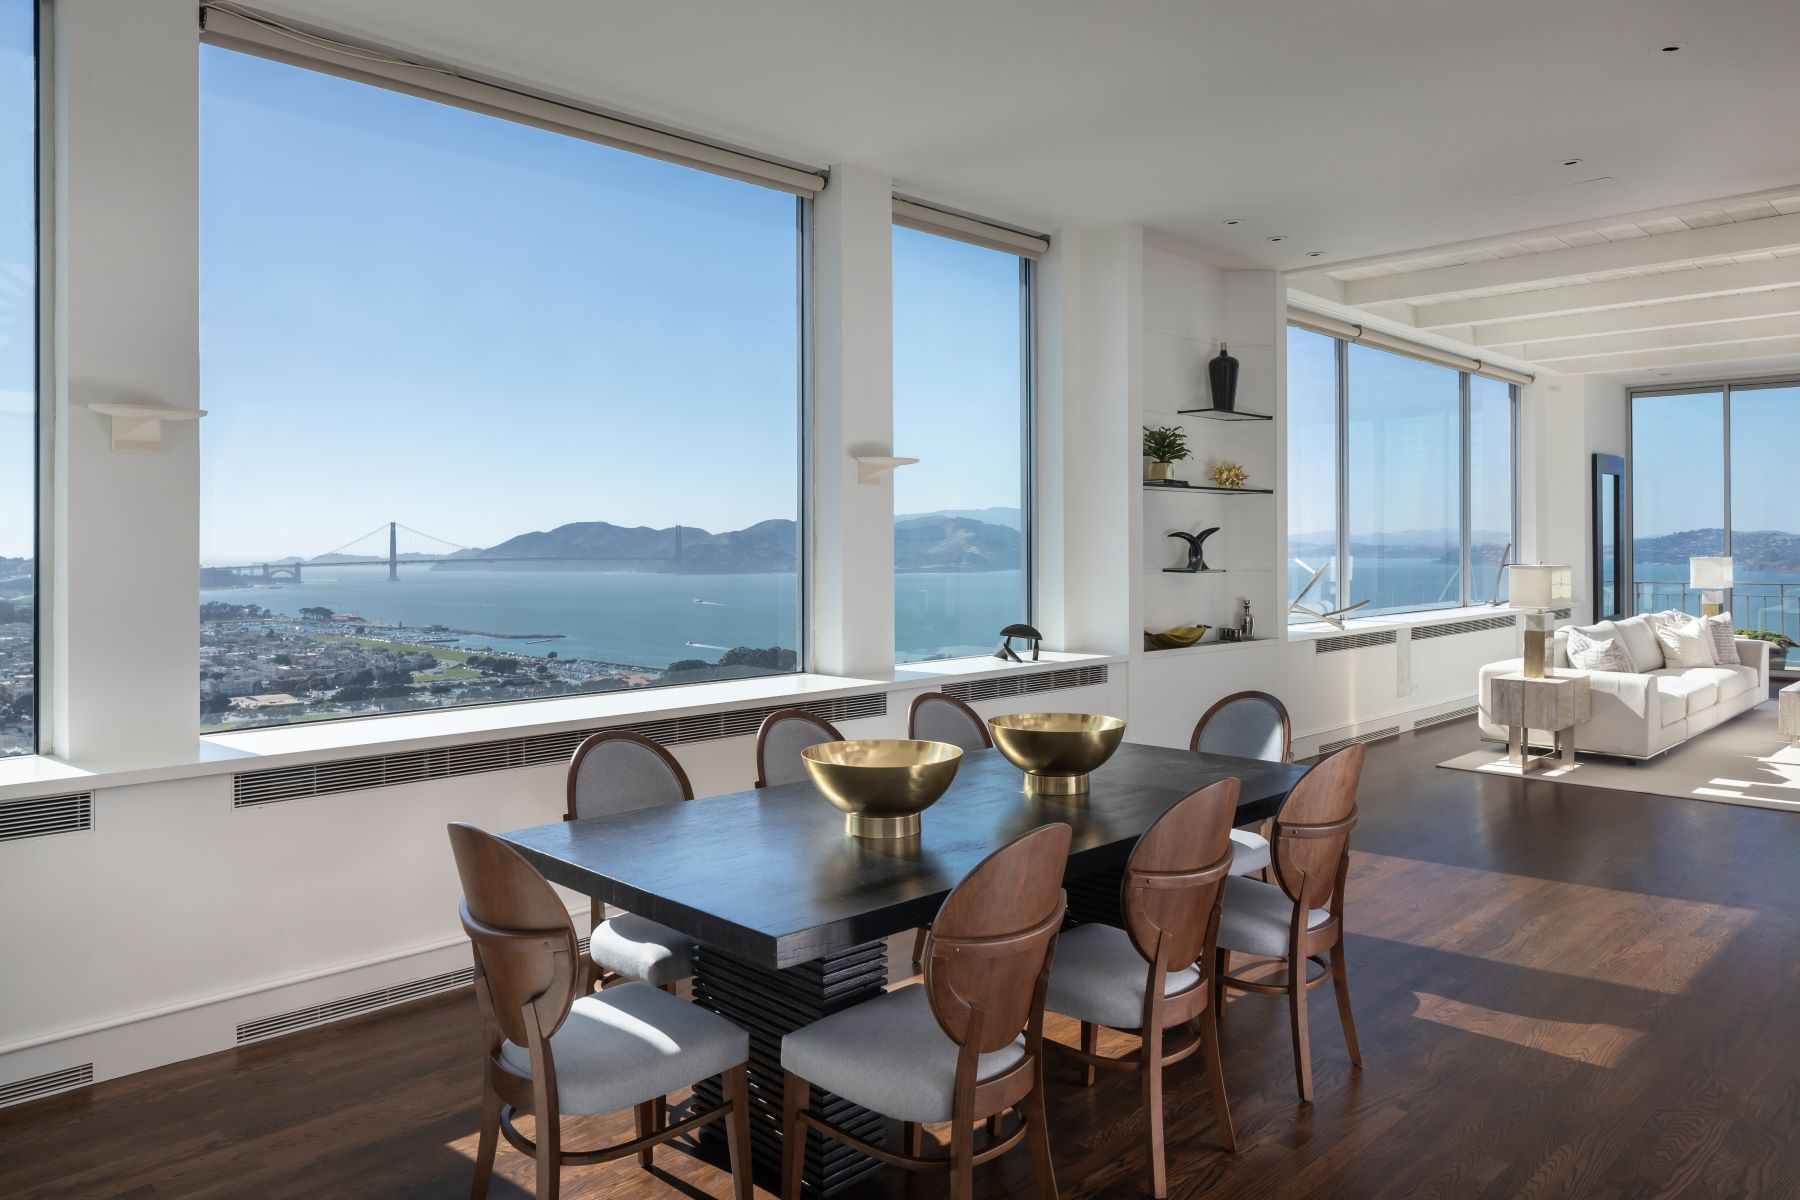 Co-op Properties for Sale at Russian Hill Penthouse 1080 Chestnut St Ph, San Francisco, California 94109 United States